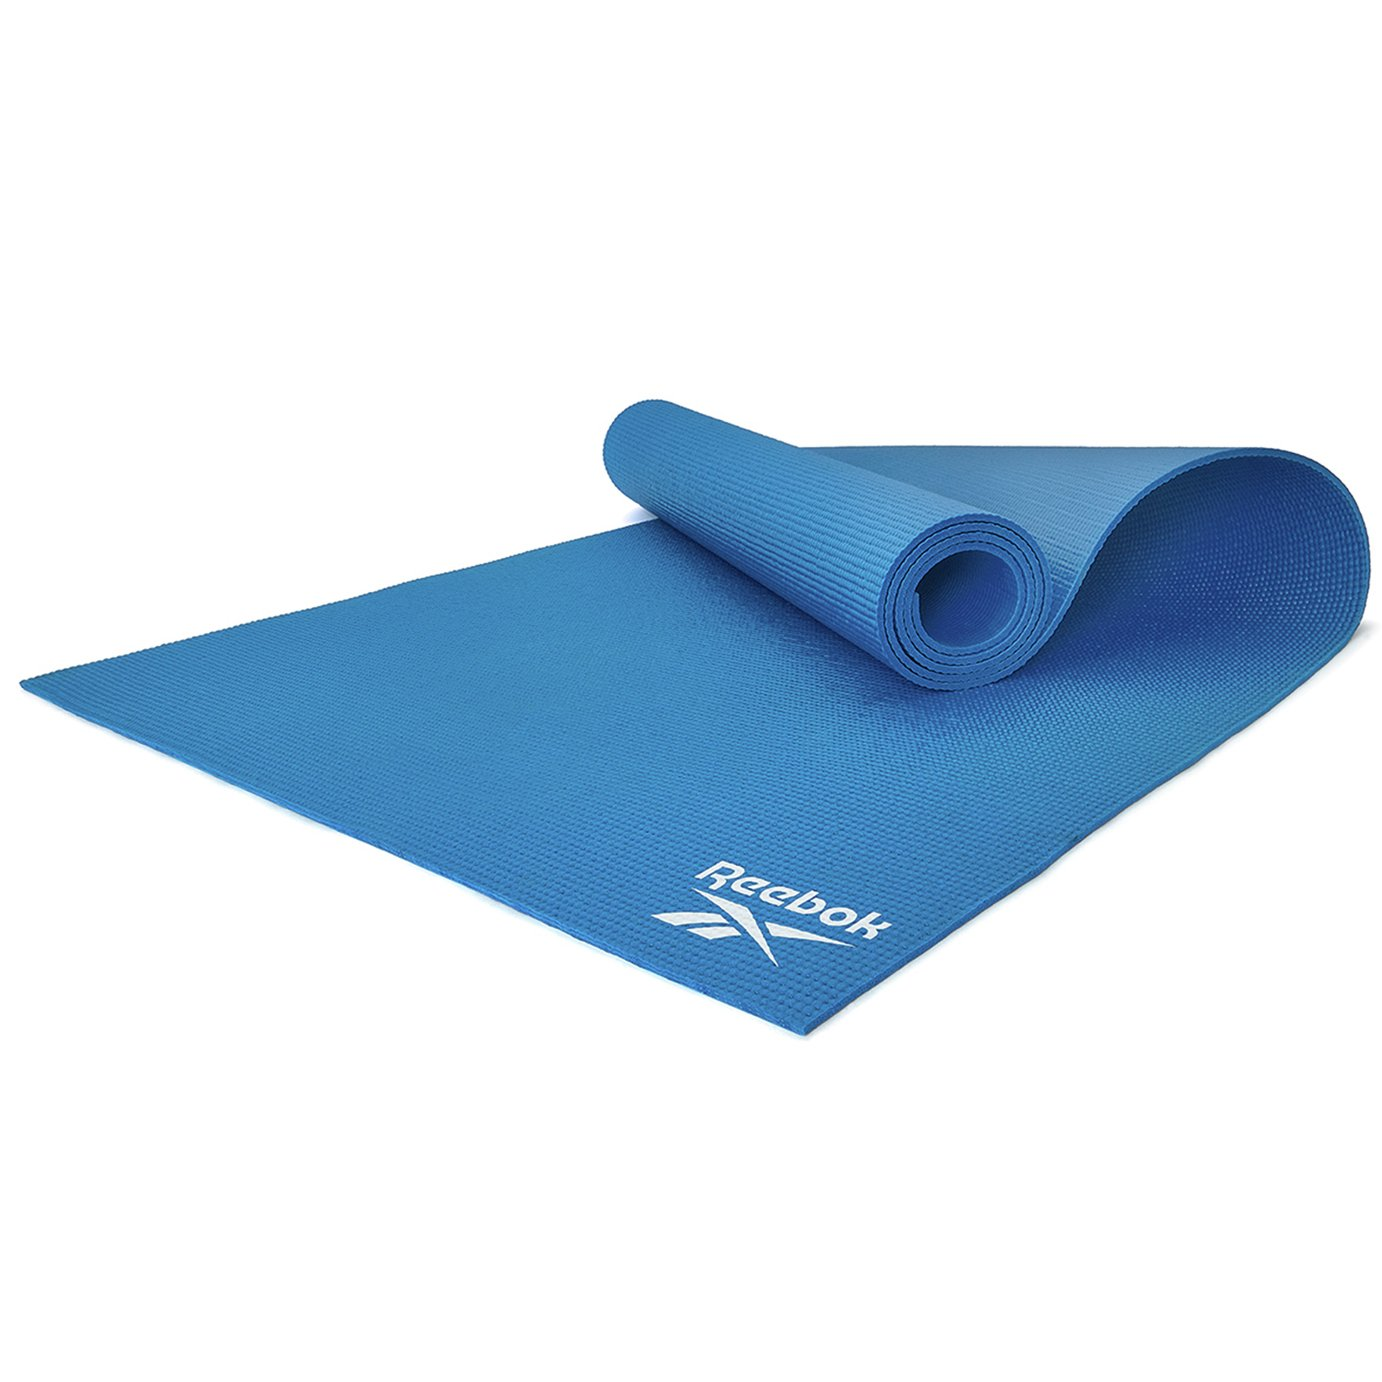 Reebok 4mm Thickness Yoga Exercise Mat